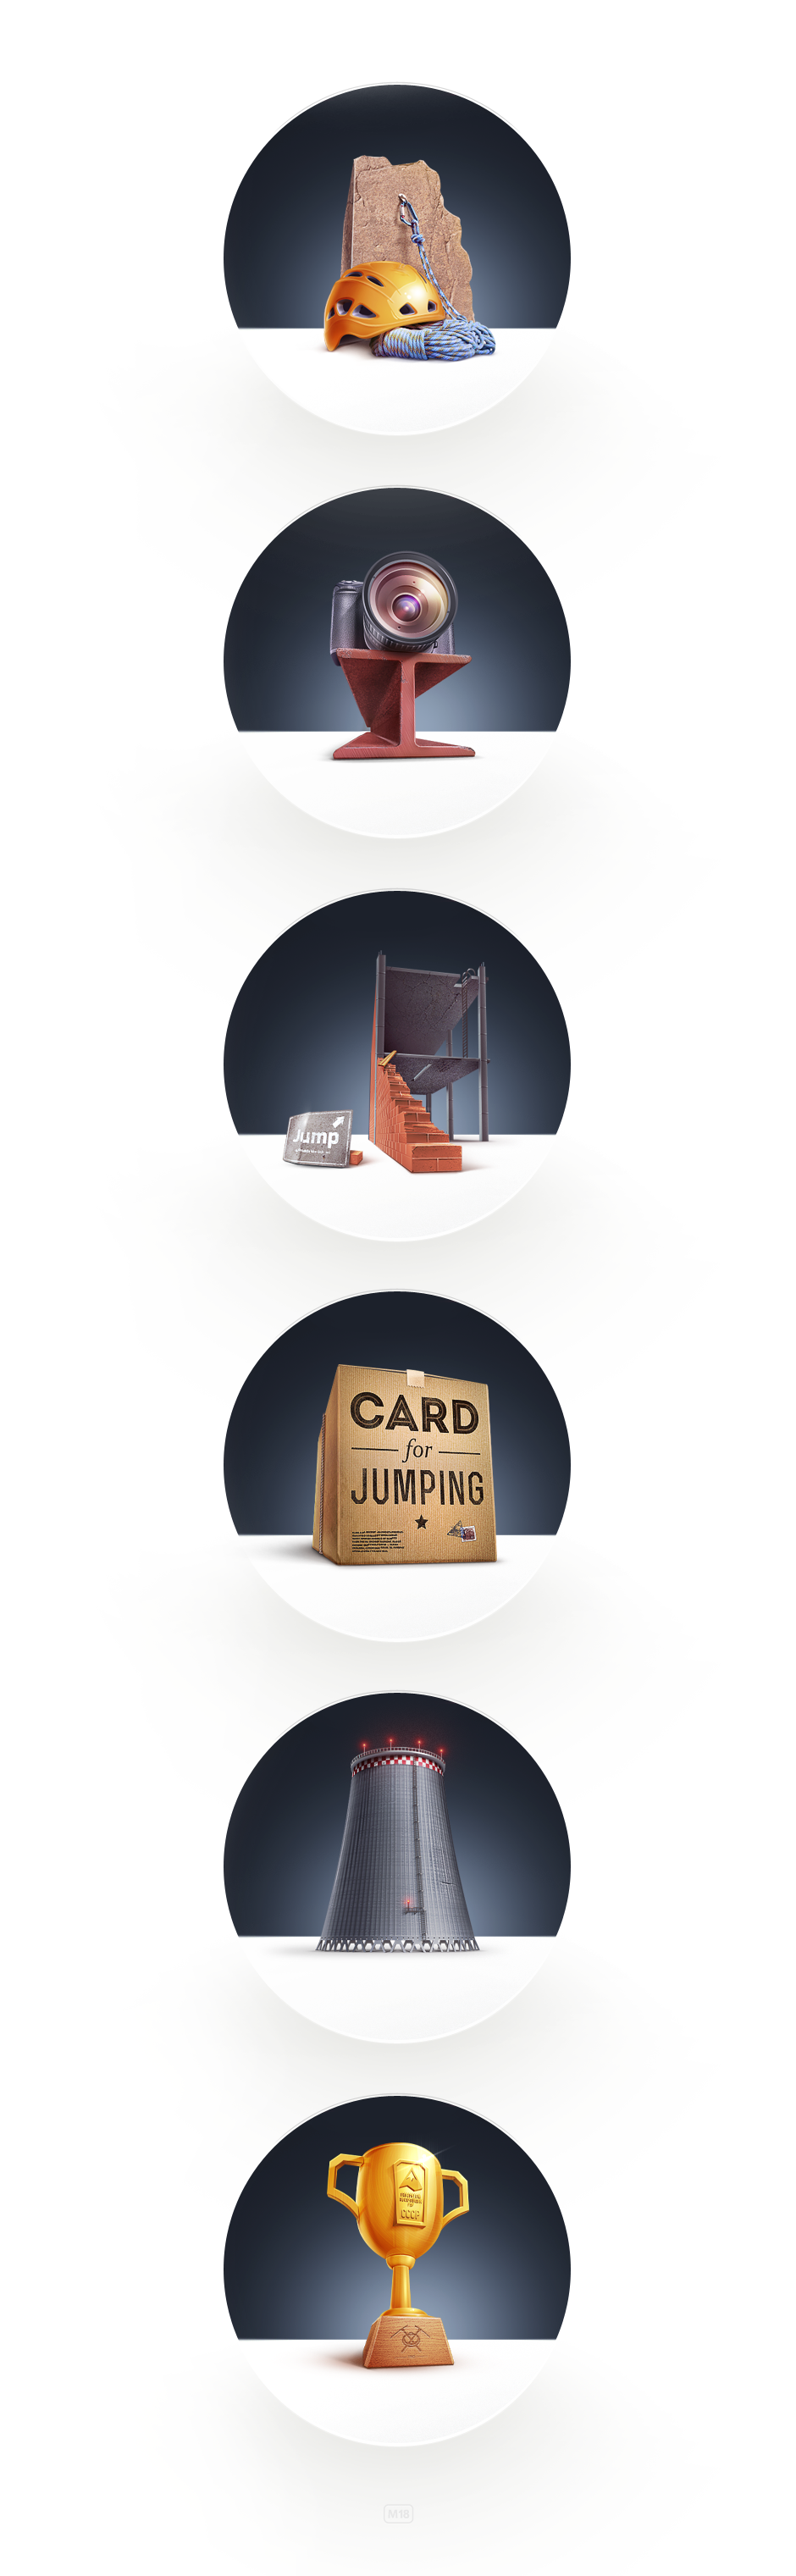 Jumping Icons